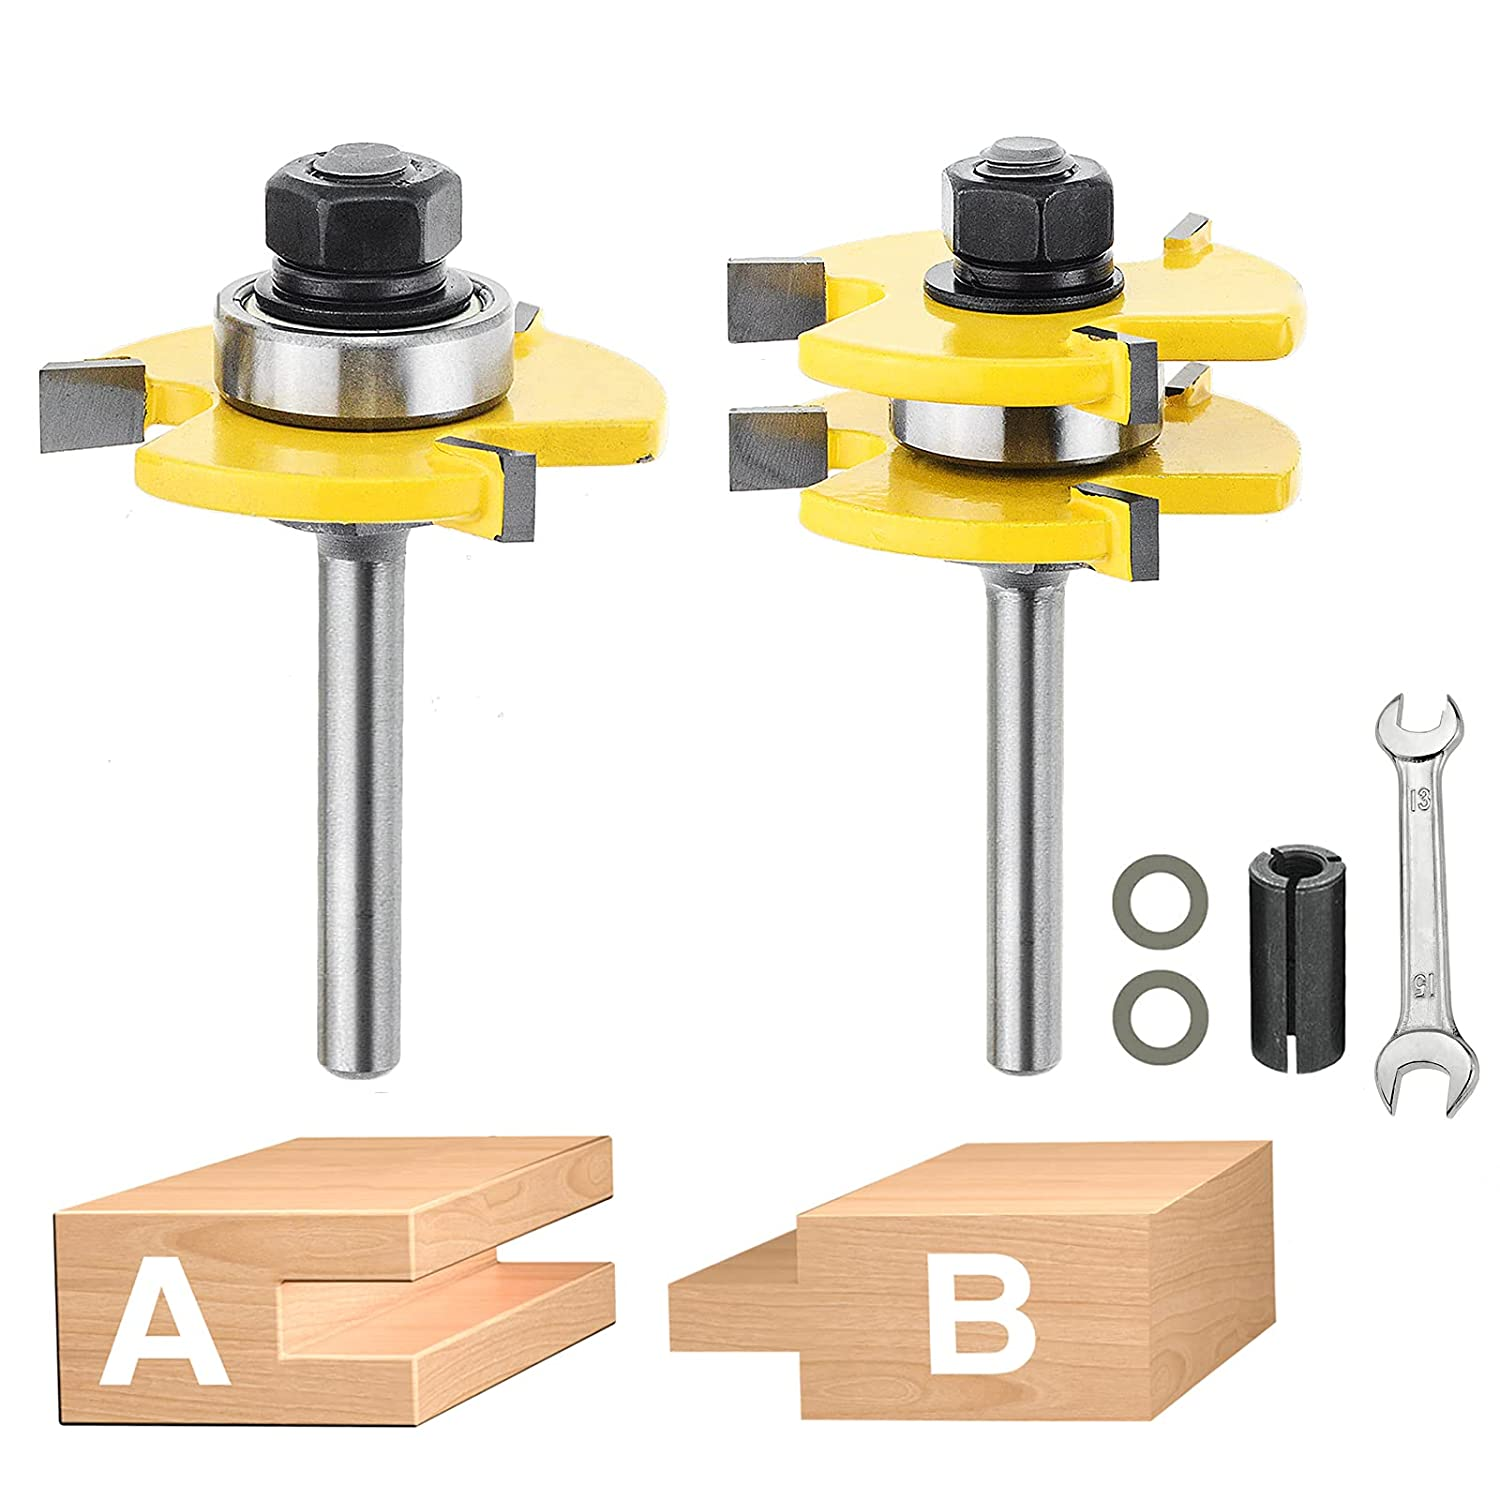 2PCS 1 Special price 4 inch Shank Tongue and Set Router Bit Fixed price for sale Groove Milli Wood